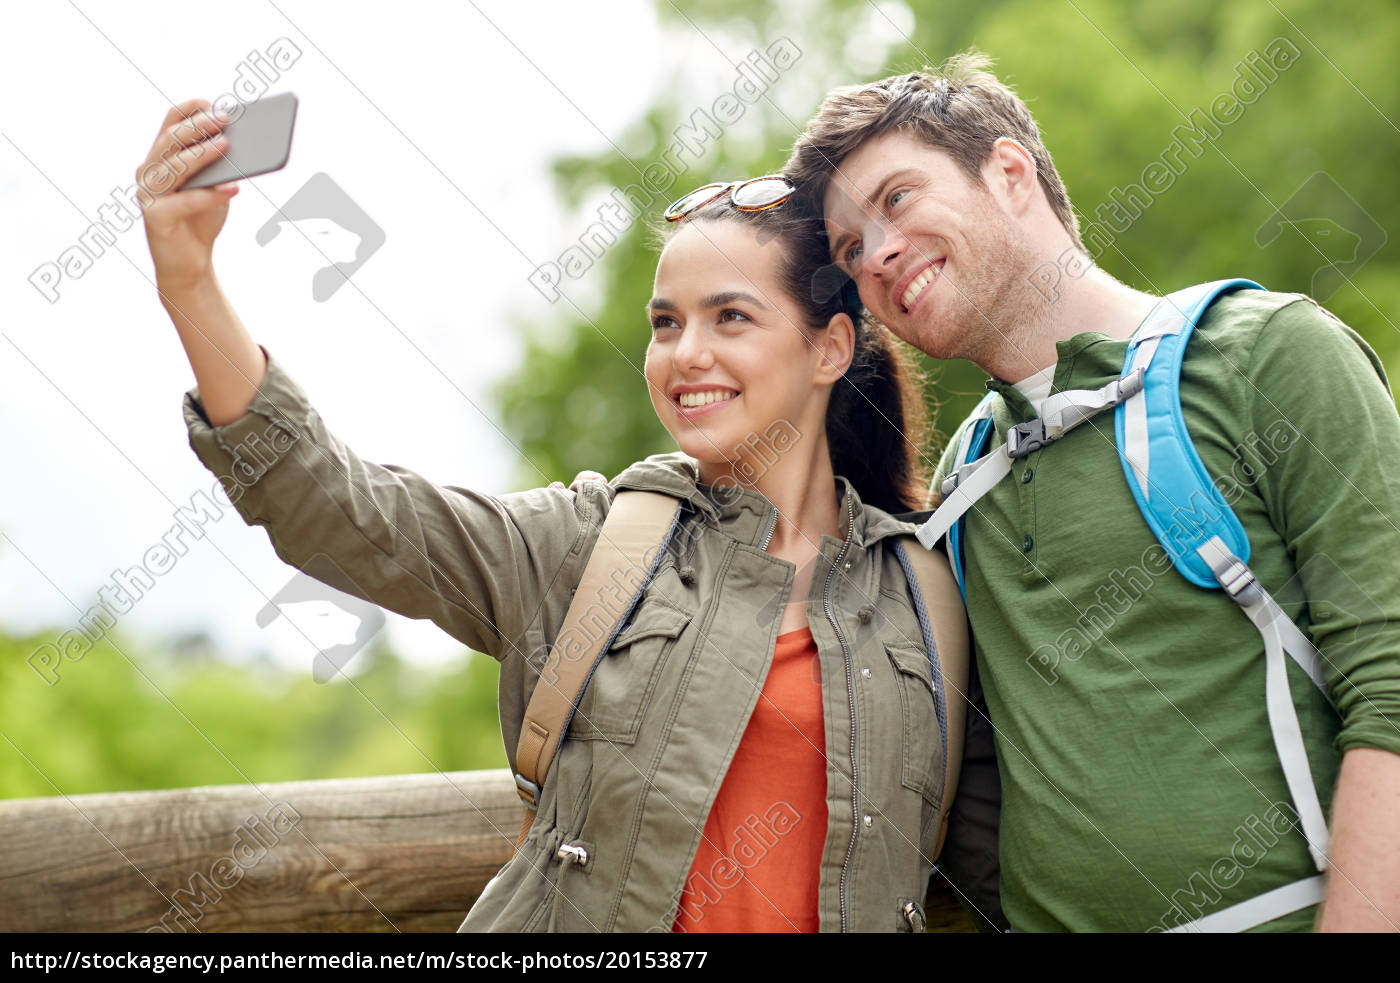 couple, with, backpacks, taking, selfie, by - 20153877